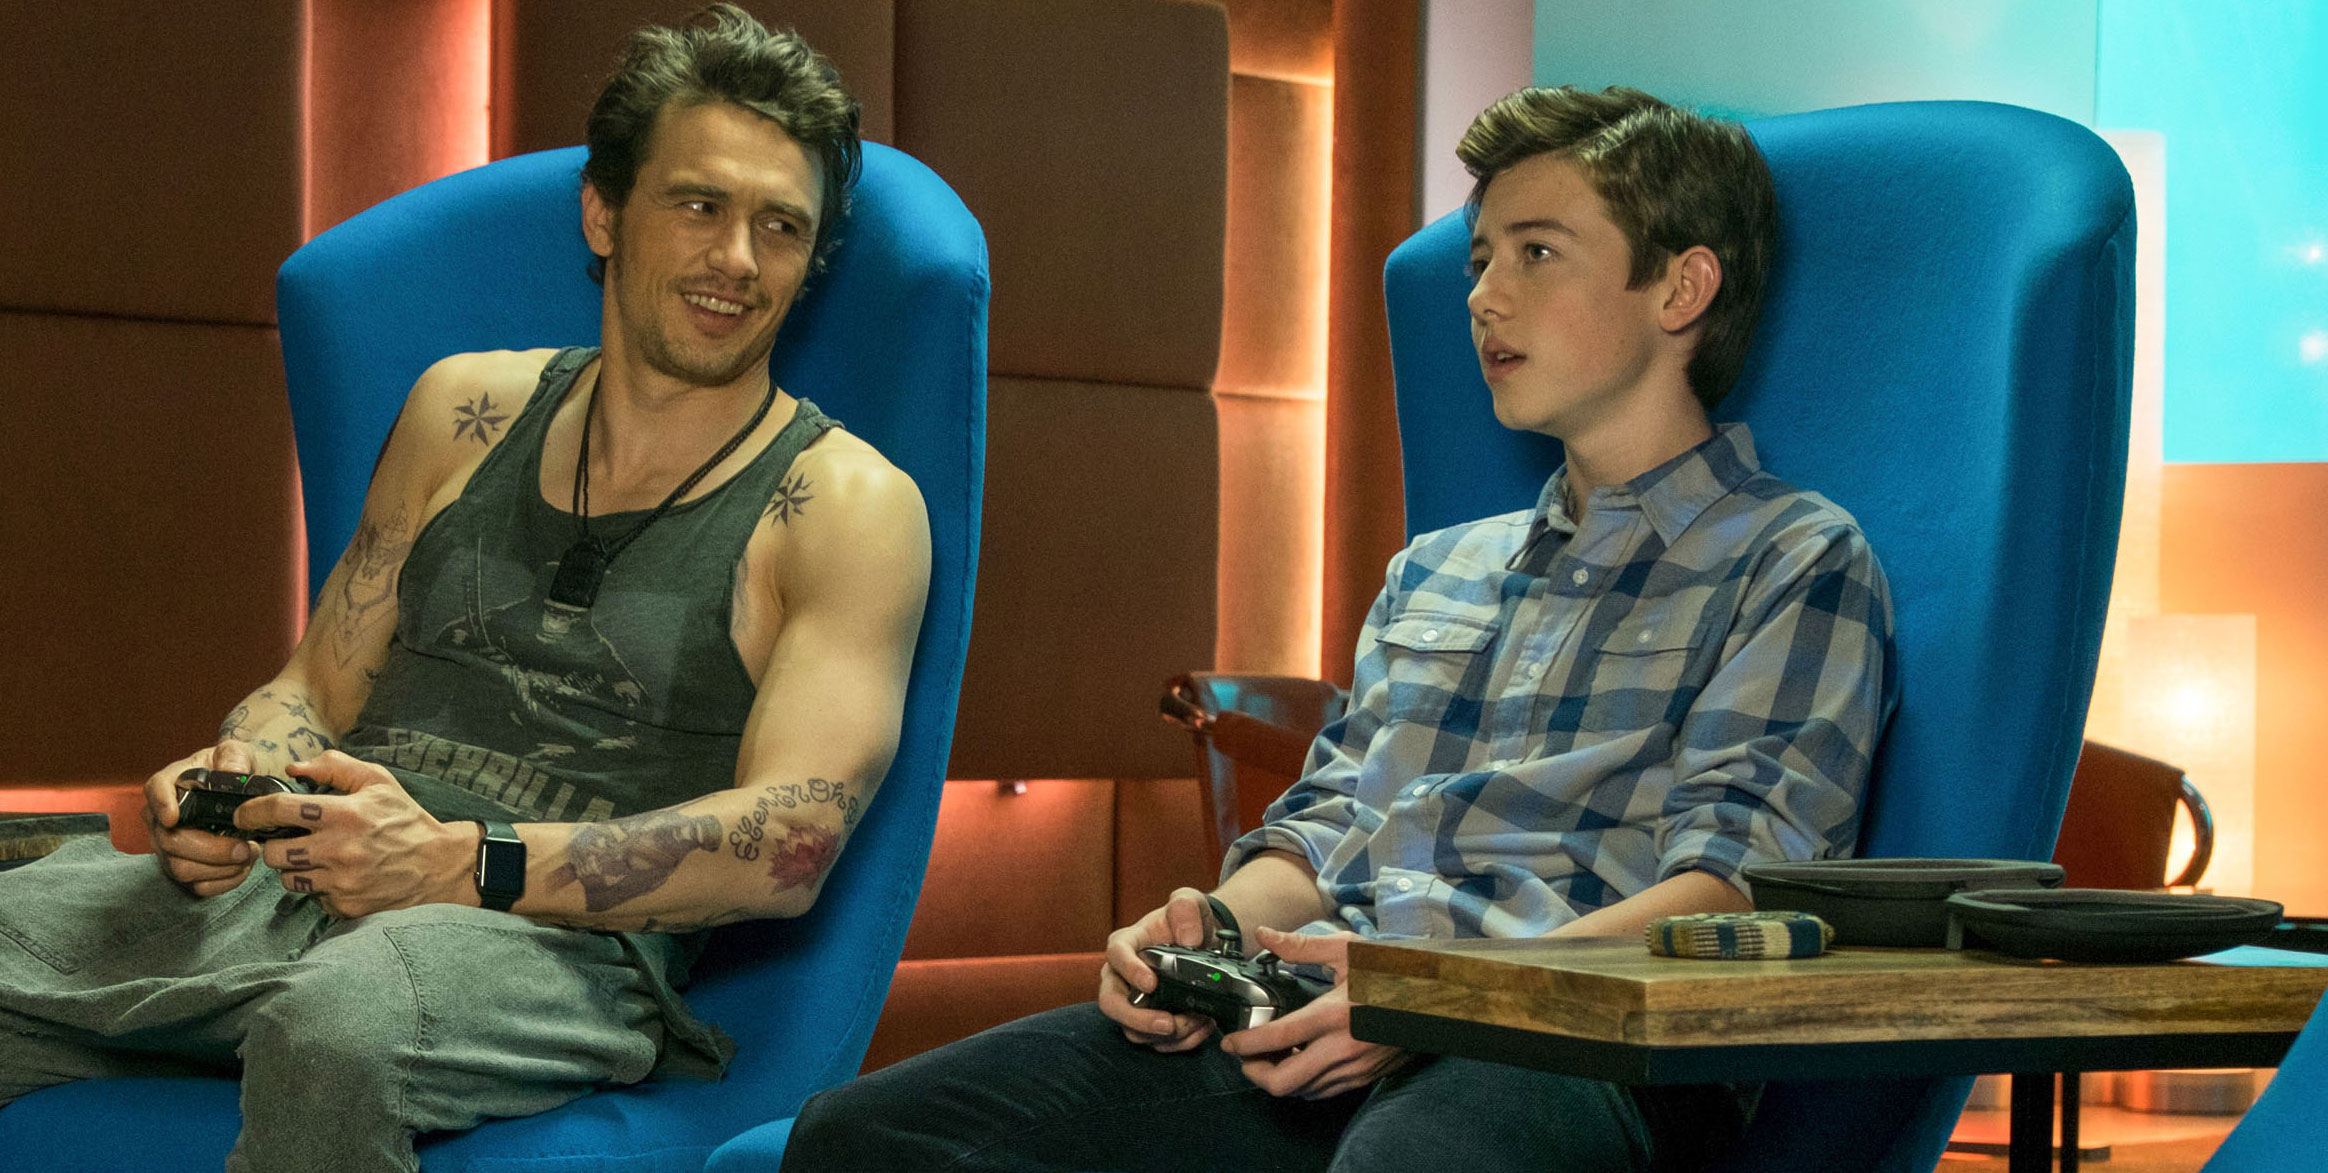 Griffin Gluck Talks Why Him  Working With James Franco Exclusive Photo Too  Exclusive